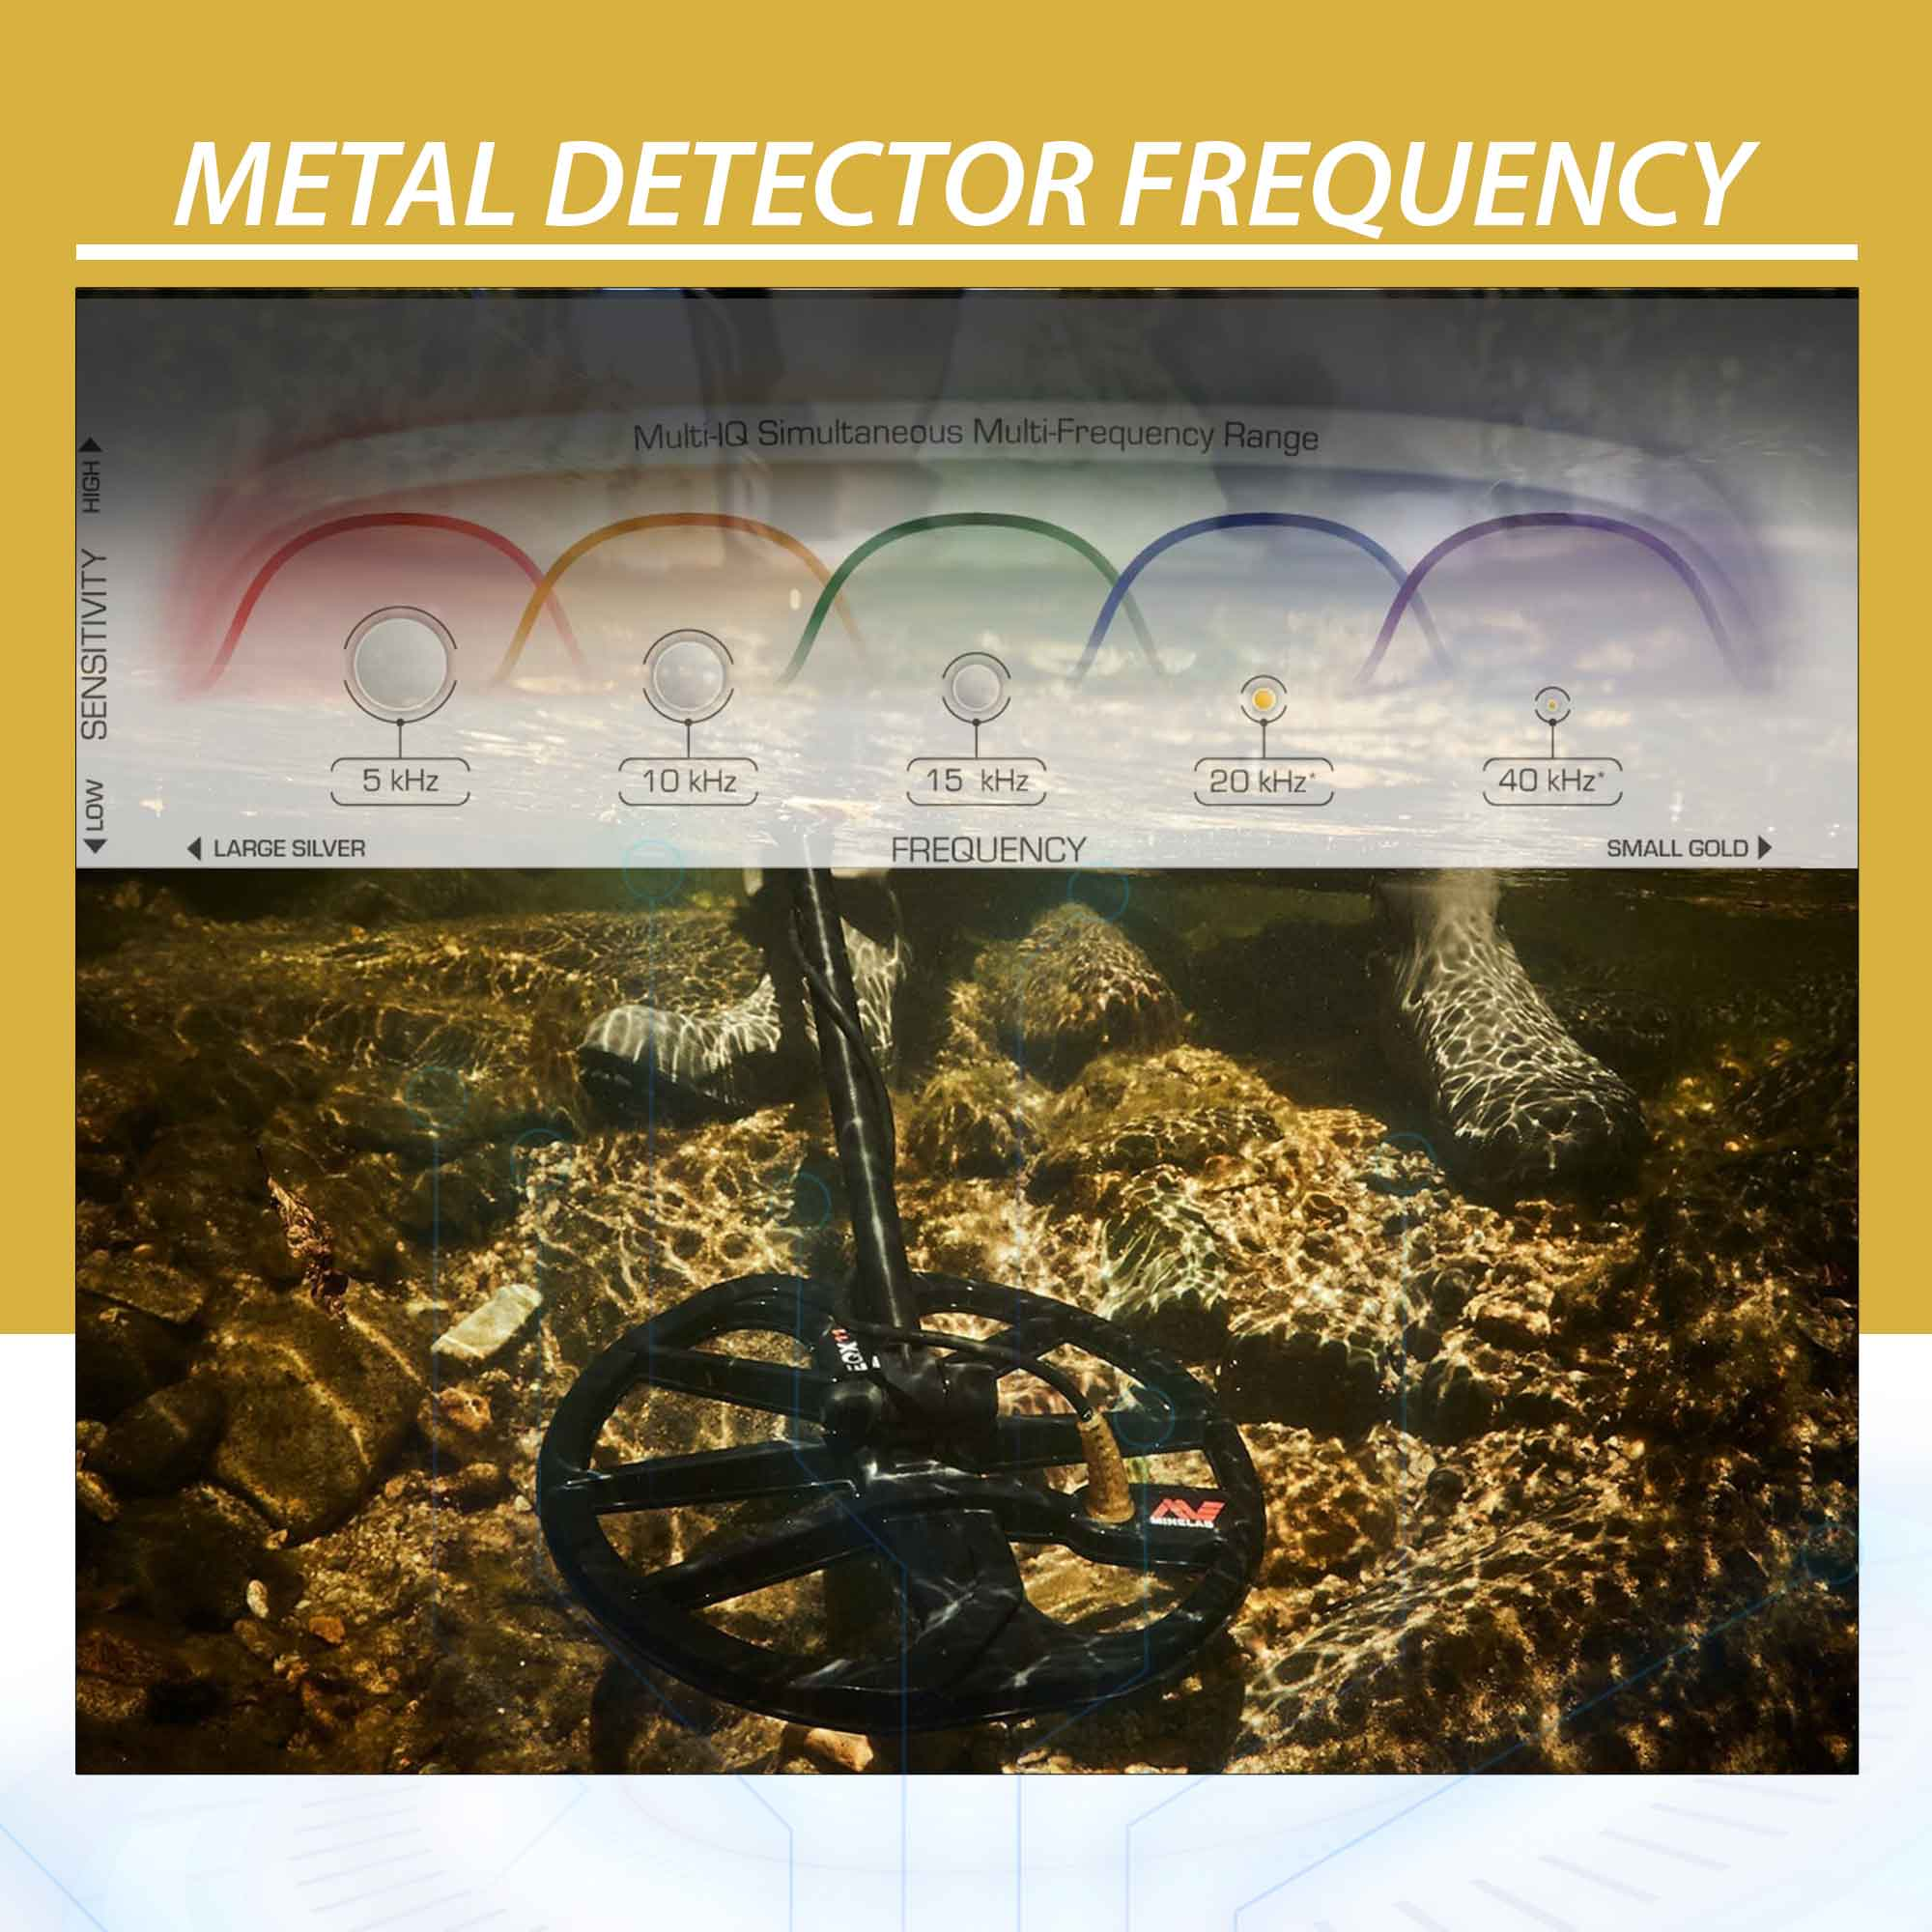 Metal Detector Frequency